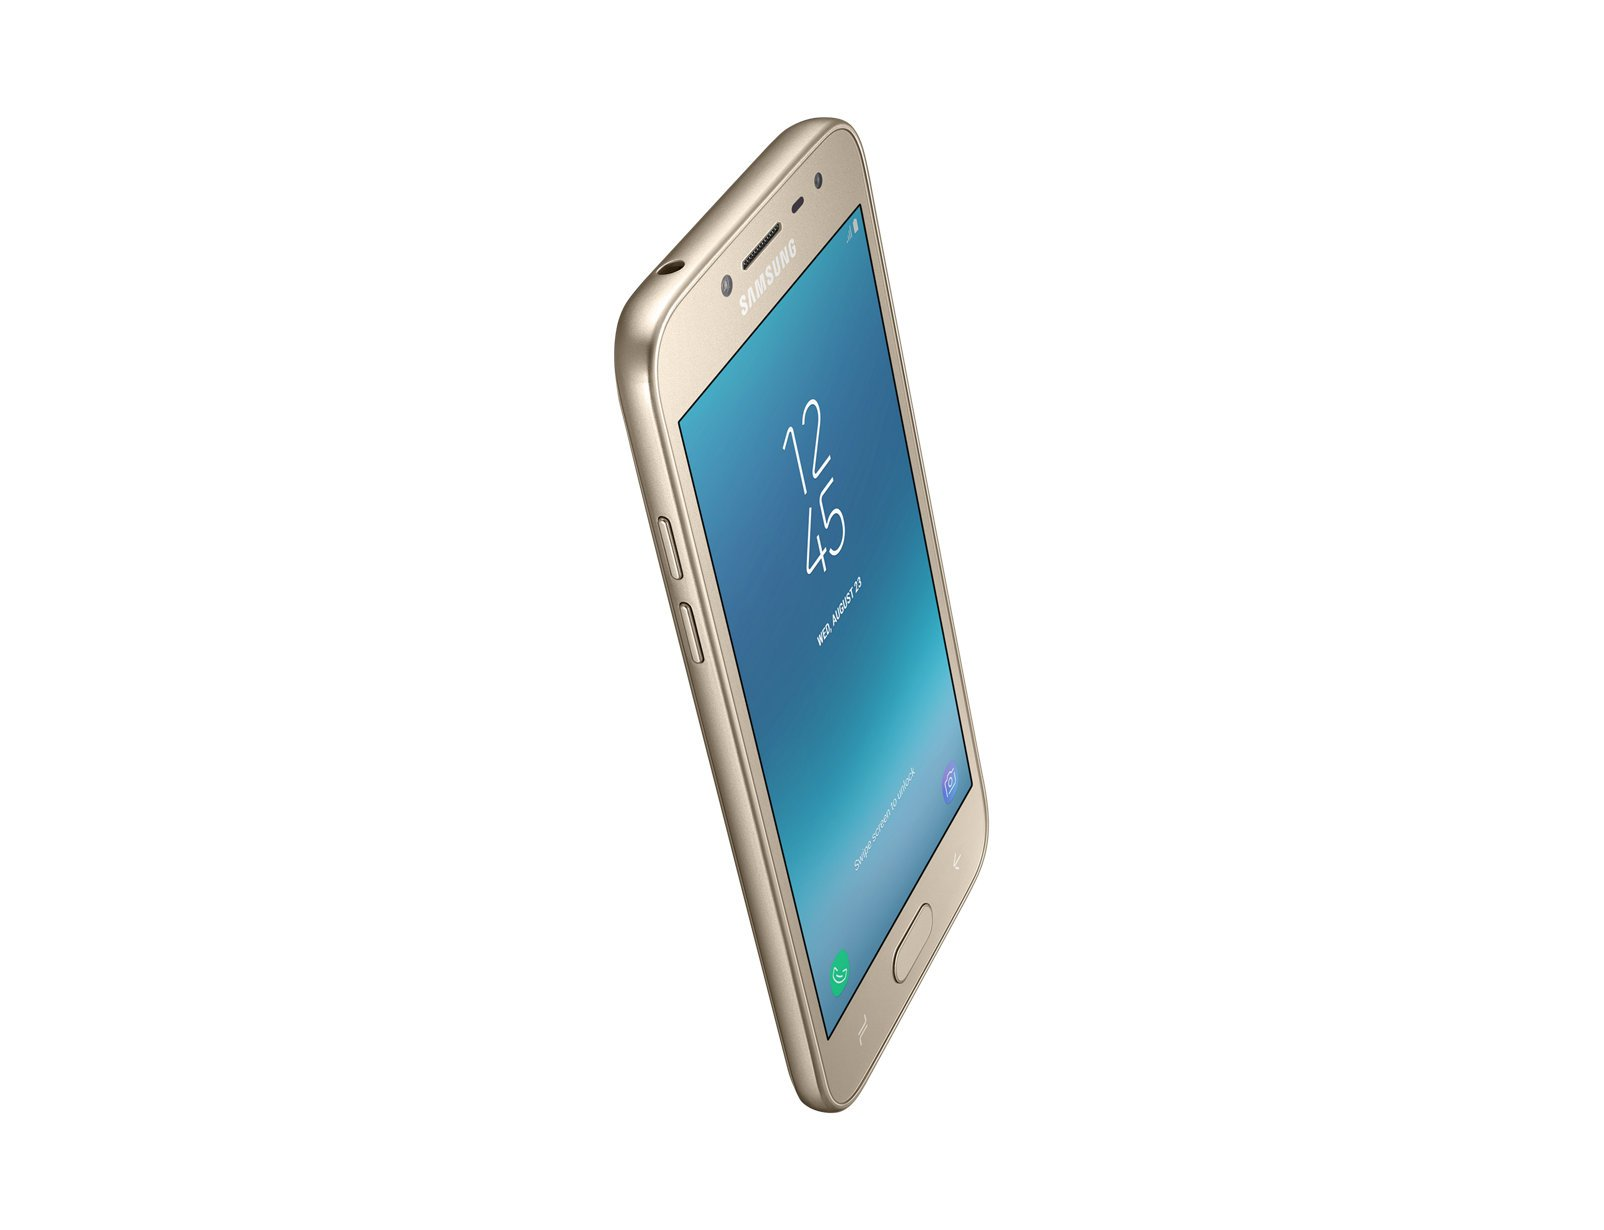 Samsung Galaxy Grand Prime Pro specs, review, release date